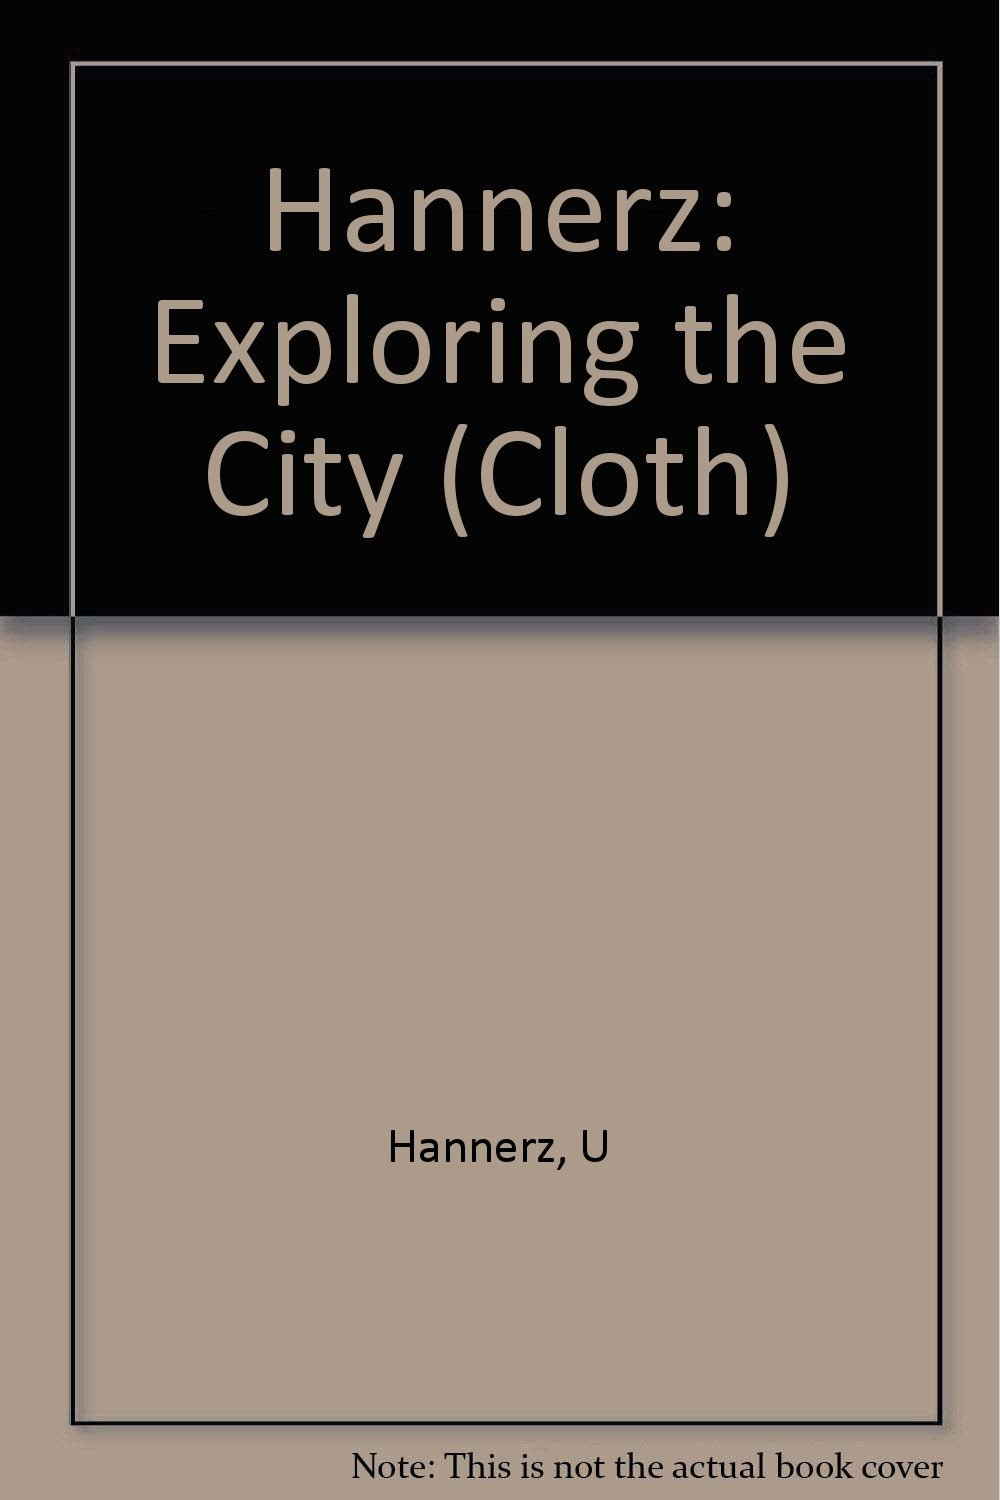 HANNERZ EXPLORING THE CITY EPUB DOWNLOAD